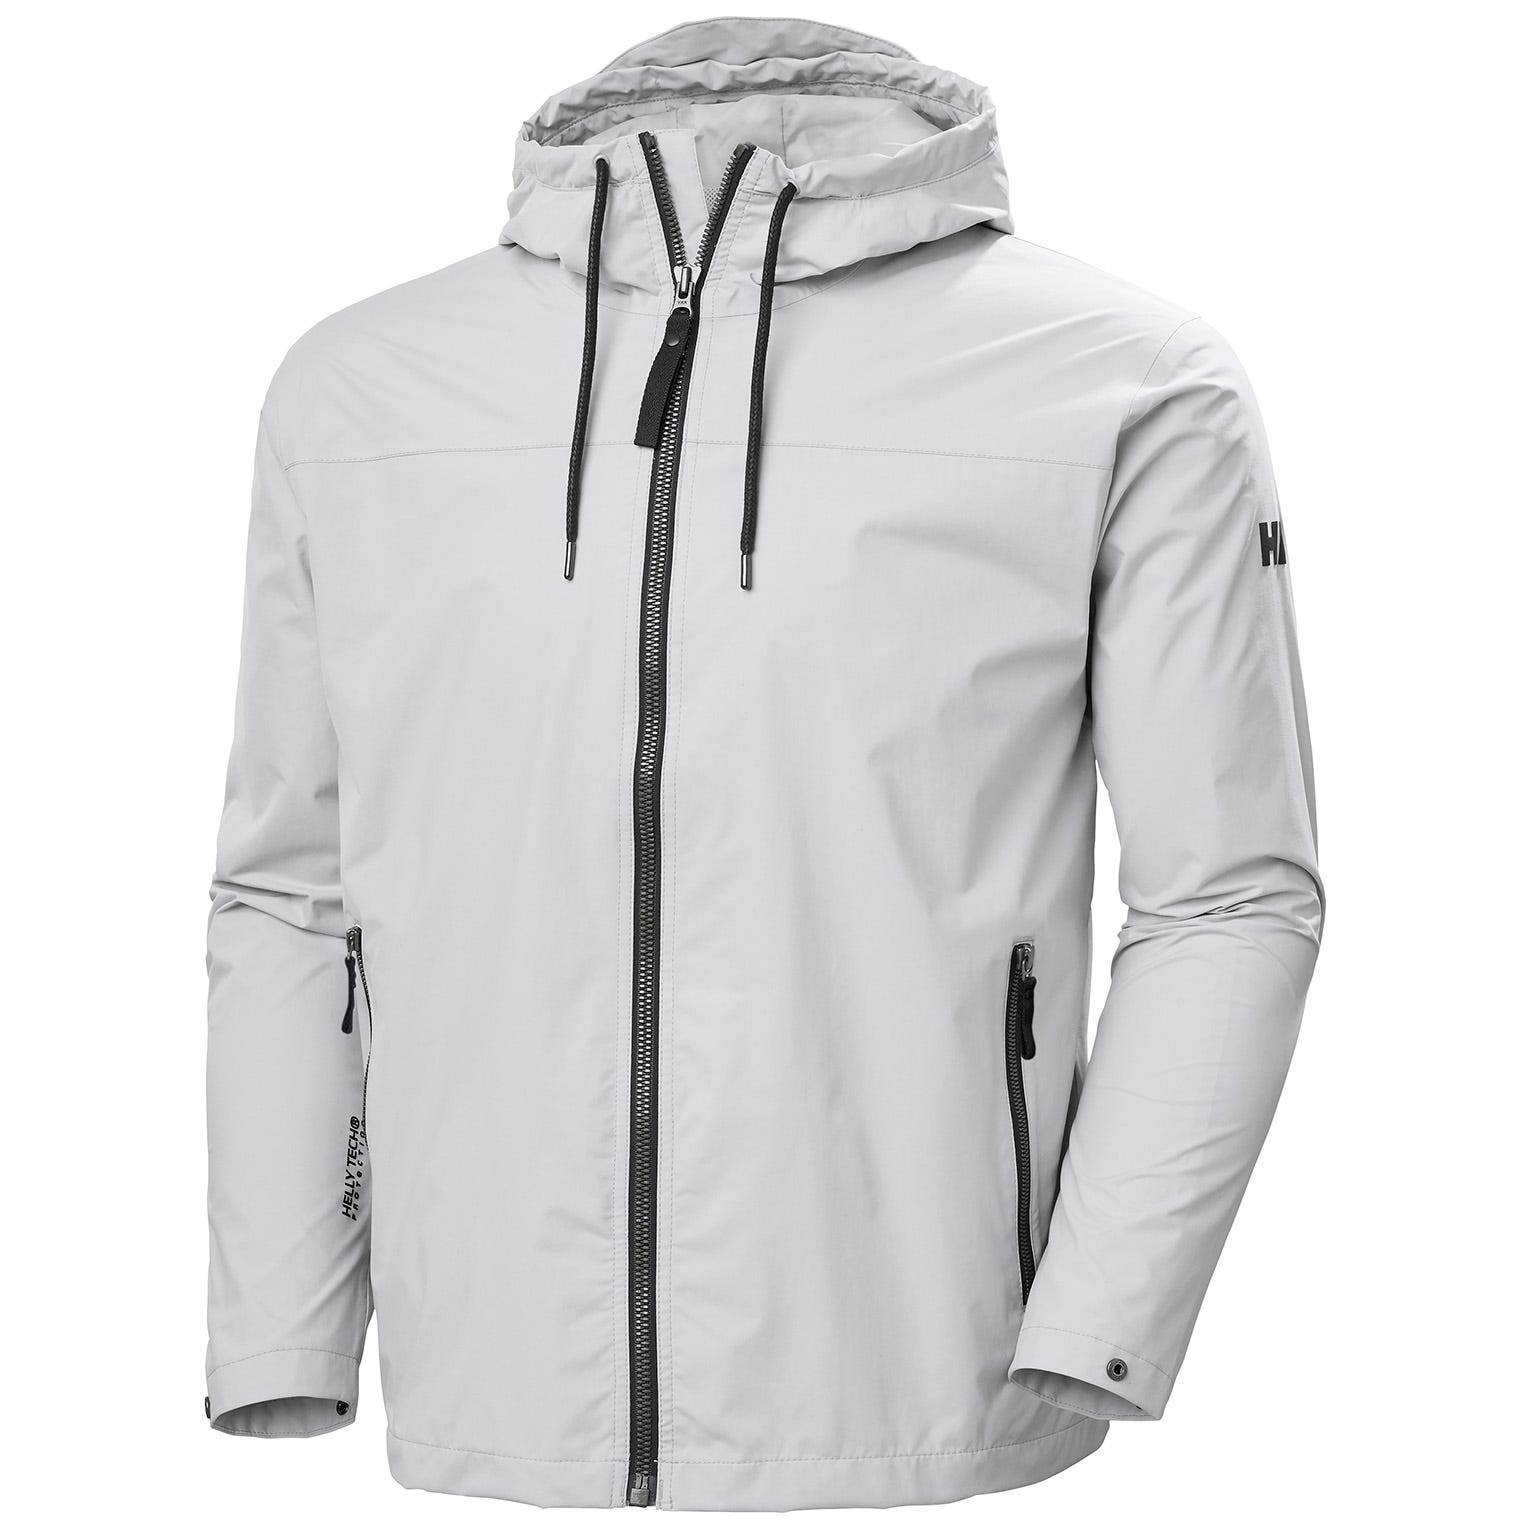 Urban Rain Jacket | Breathable For Summer Days Gb Helly Hansen Mens Grey M